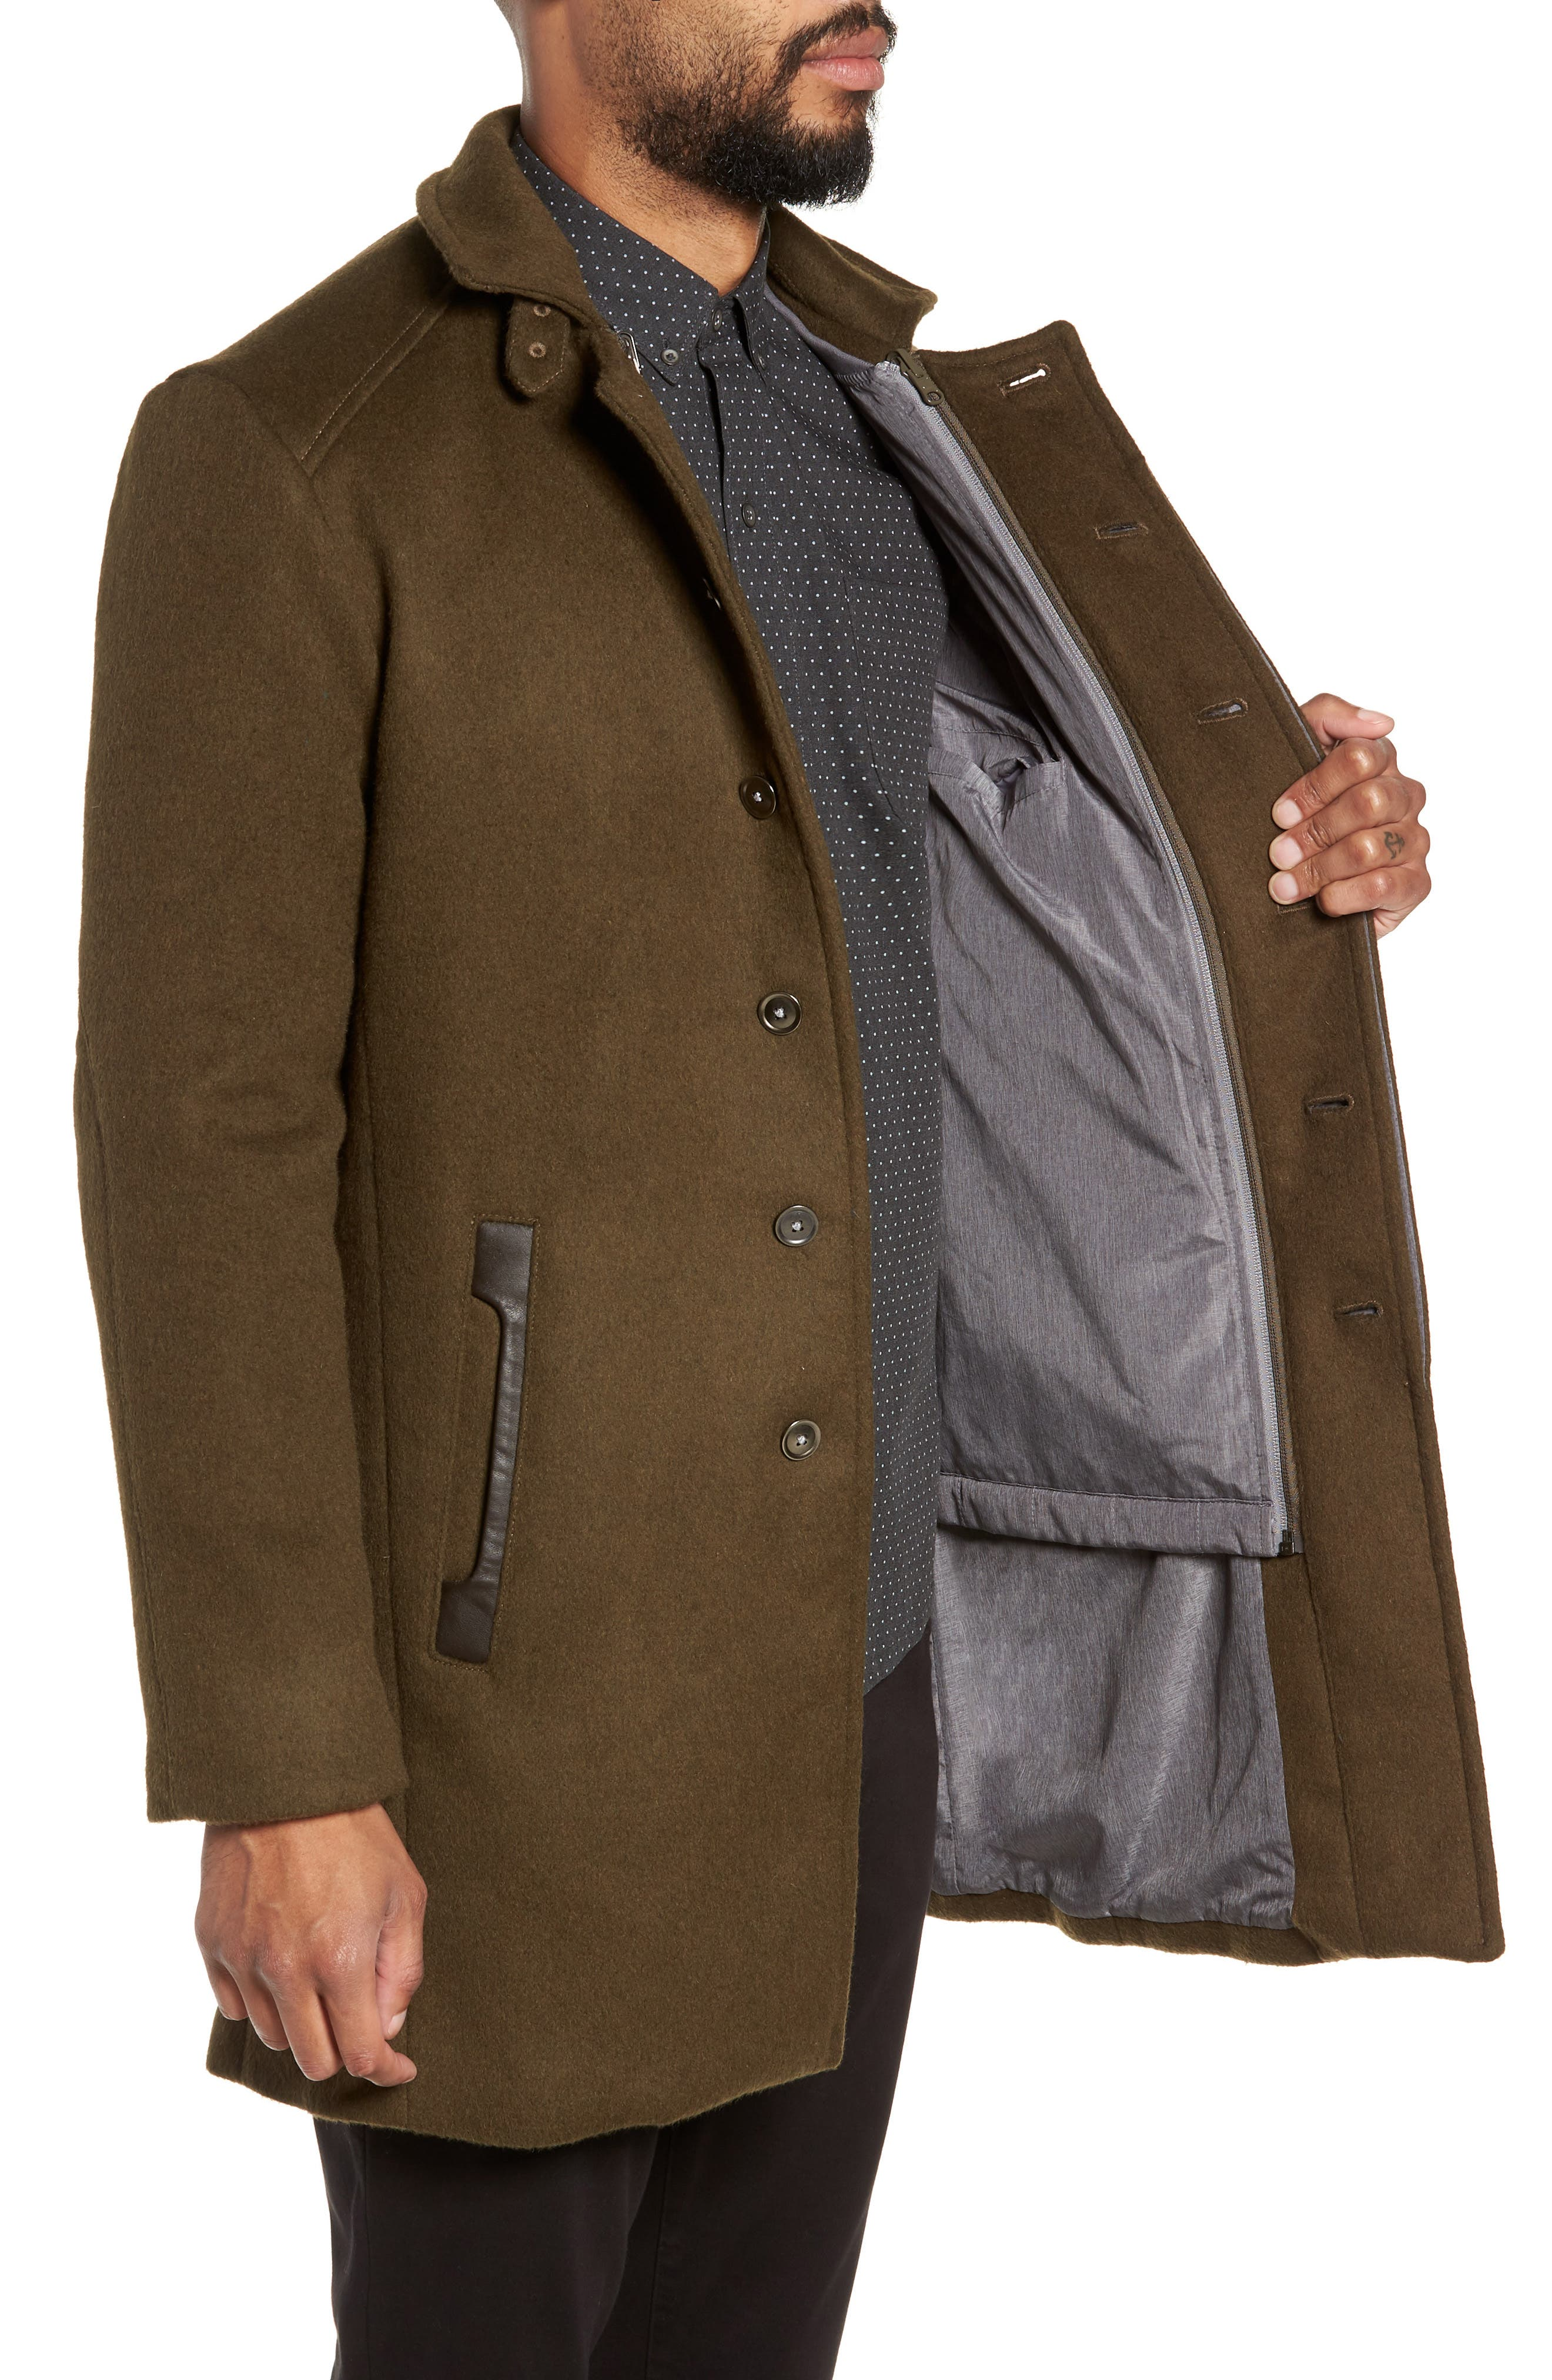 Kilo 3-in-1 Peacoat with Removable Quilted Jacket,                             Alternate thumbnail 4, color,                             OLIVE